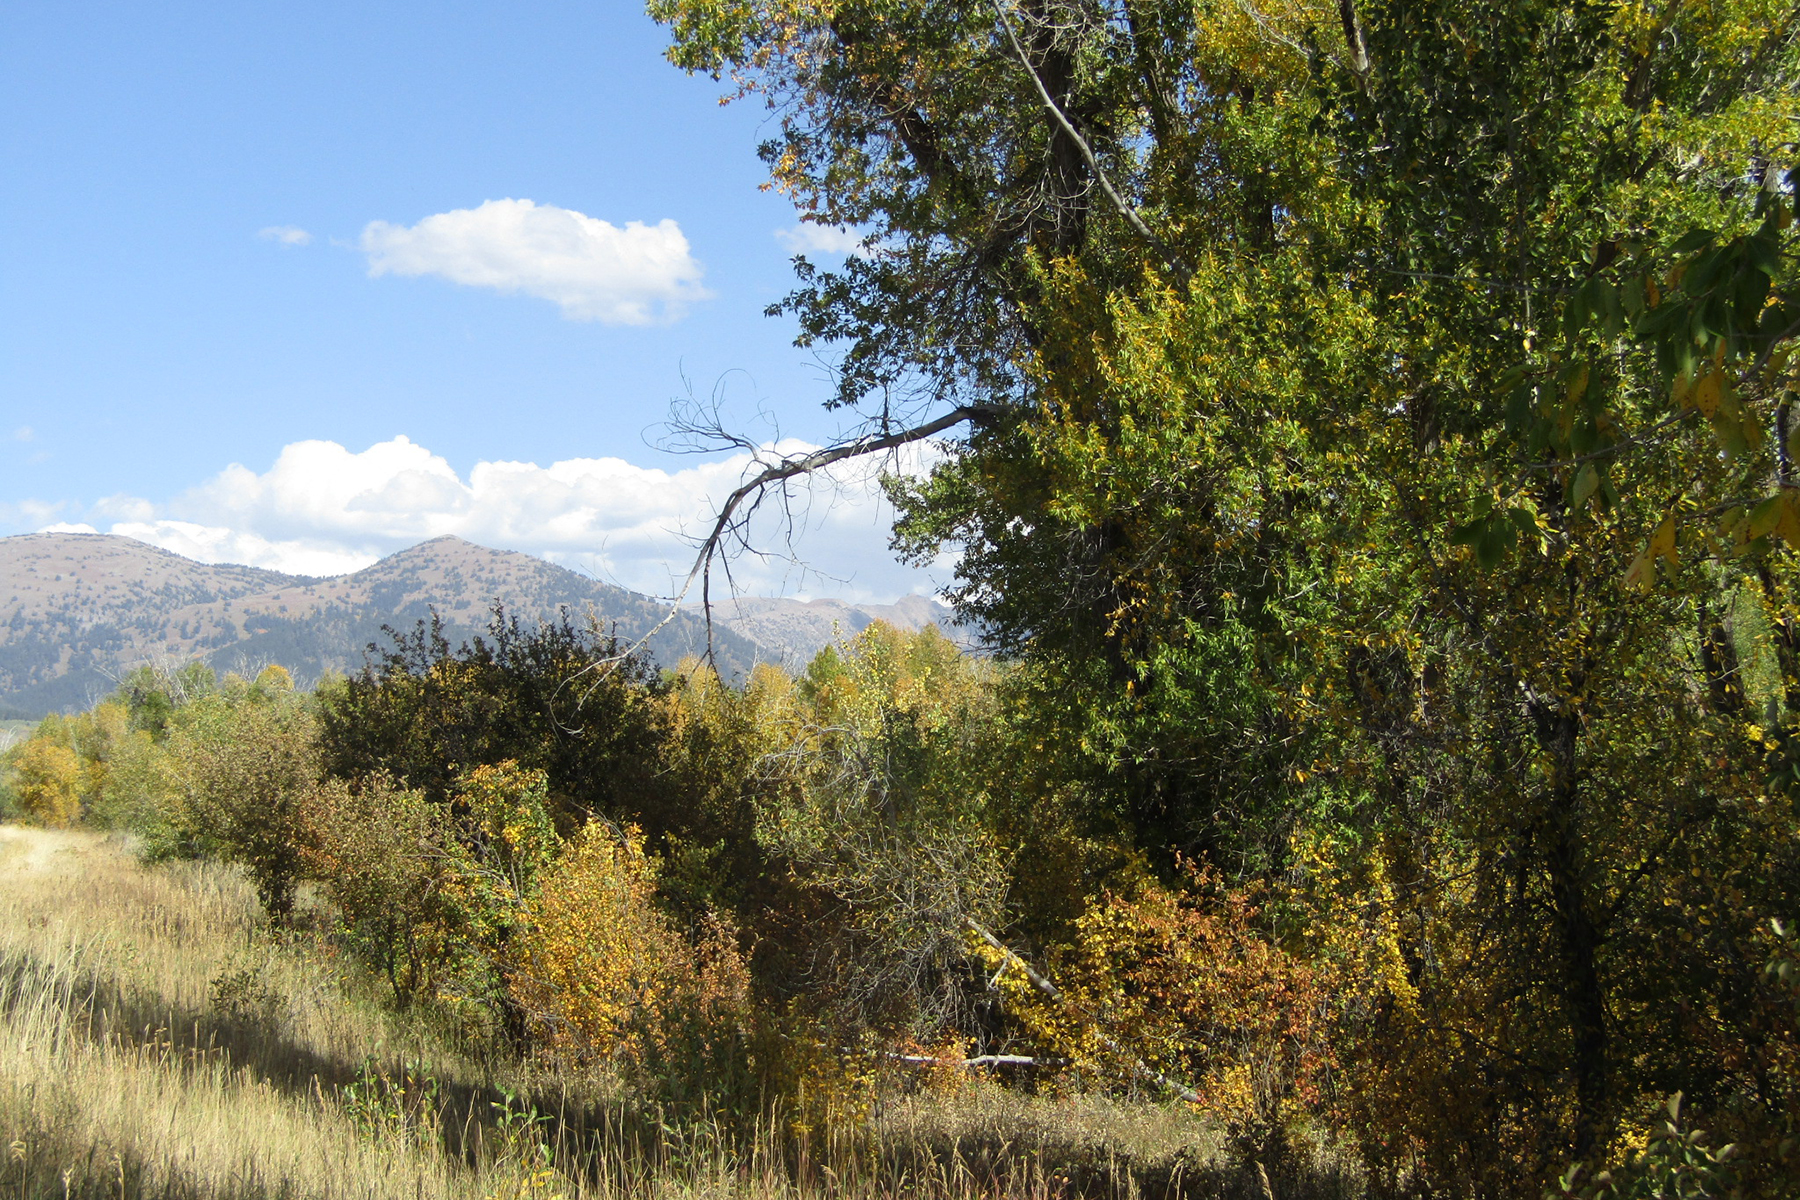 Land for Sale at 5 Ski Hill Rd Lots With Trees 2079 Aerie Cir Driggs, Idaho 83422 United States